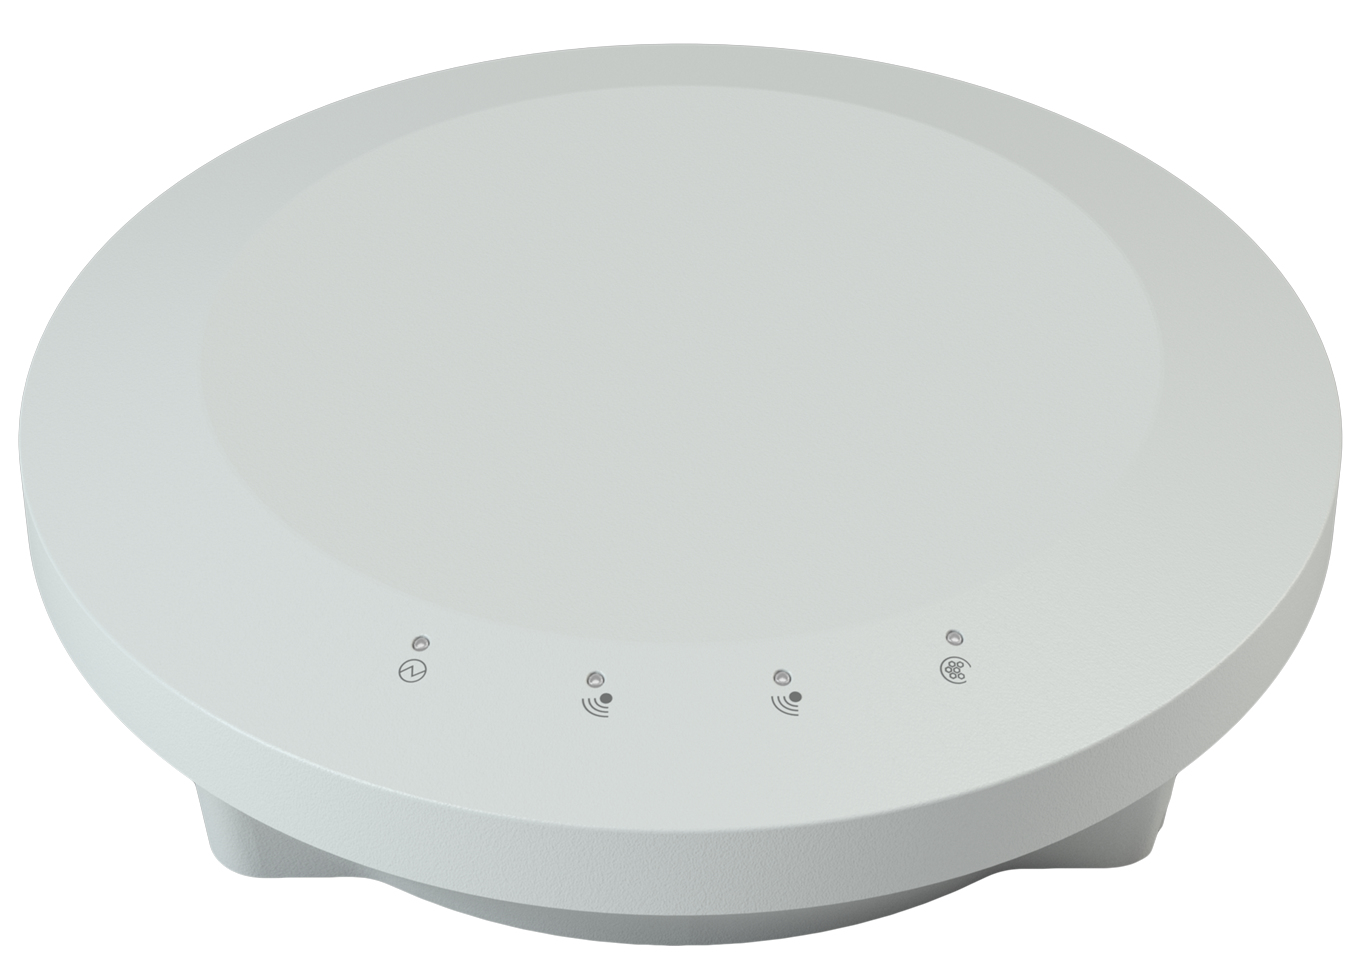 EXTREME NETWORKS 37114 WING AP 7632 867MBIT - S POWER OVER ETHERNET (POE) WHITE WLAN ACCESS POINT